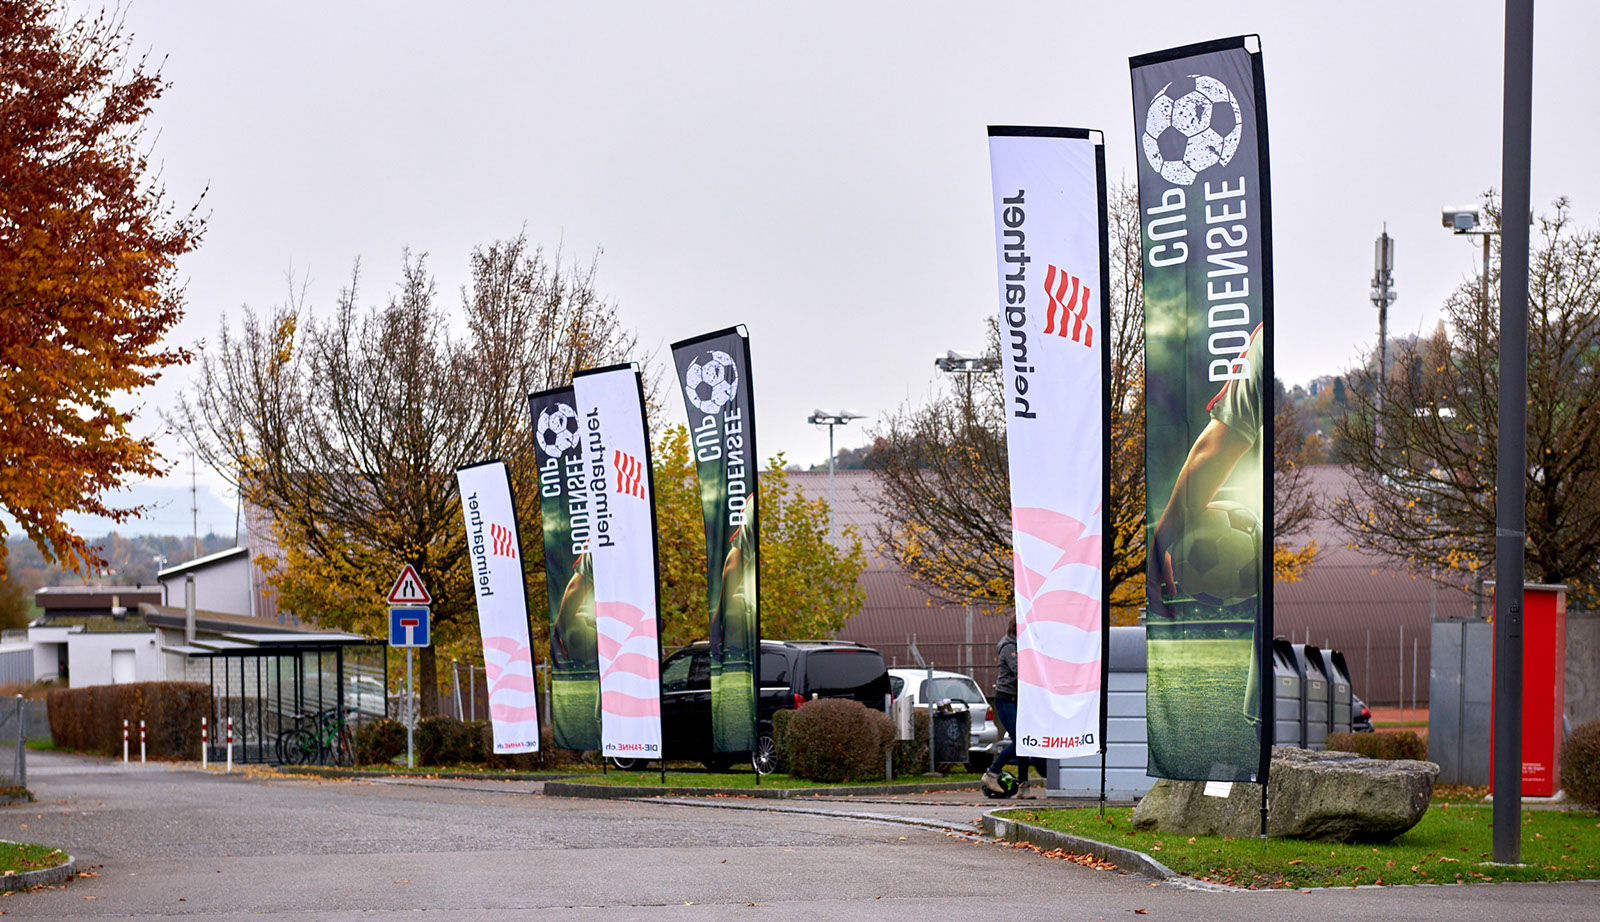 Bodensee-Cup_20171110_155526.jpg